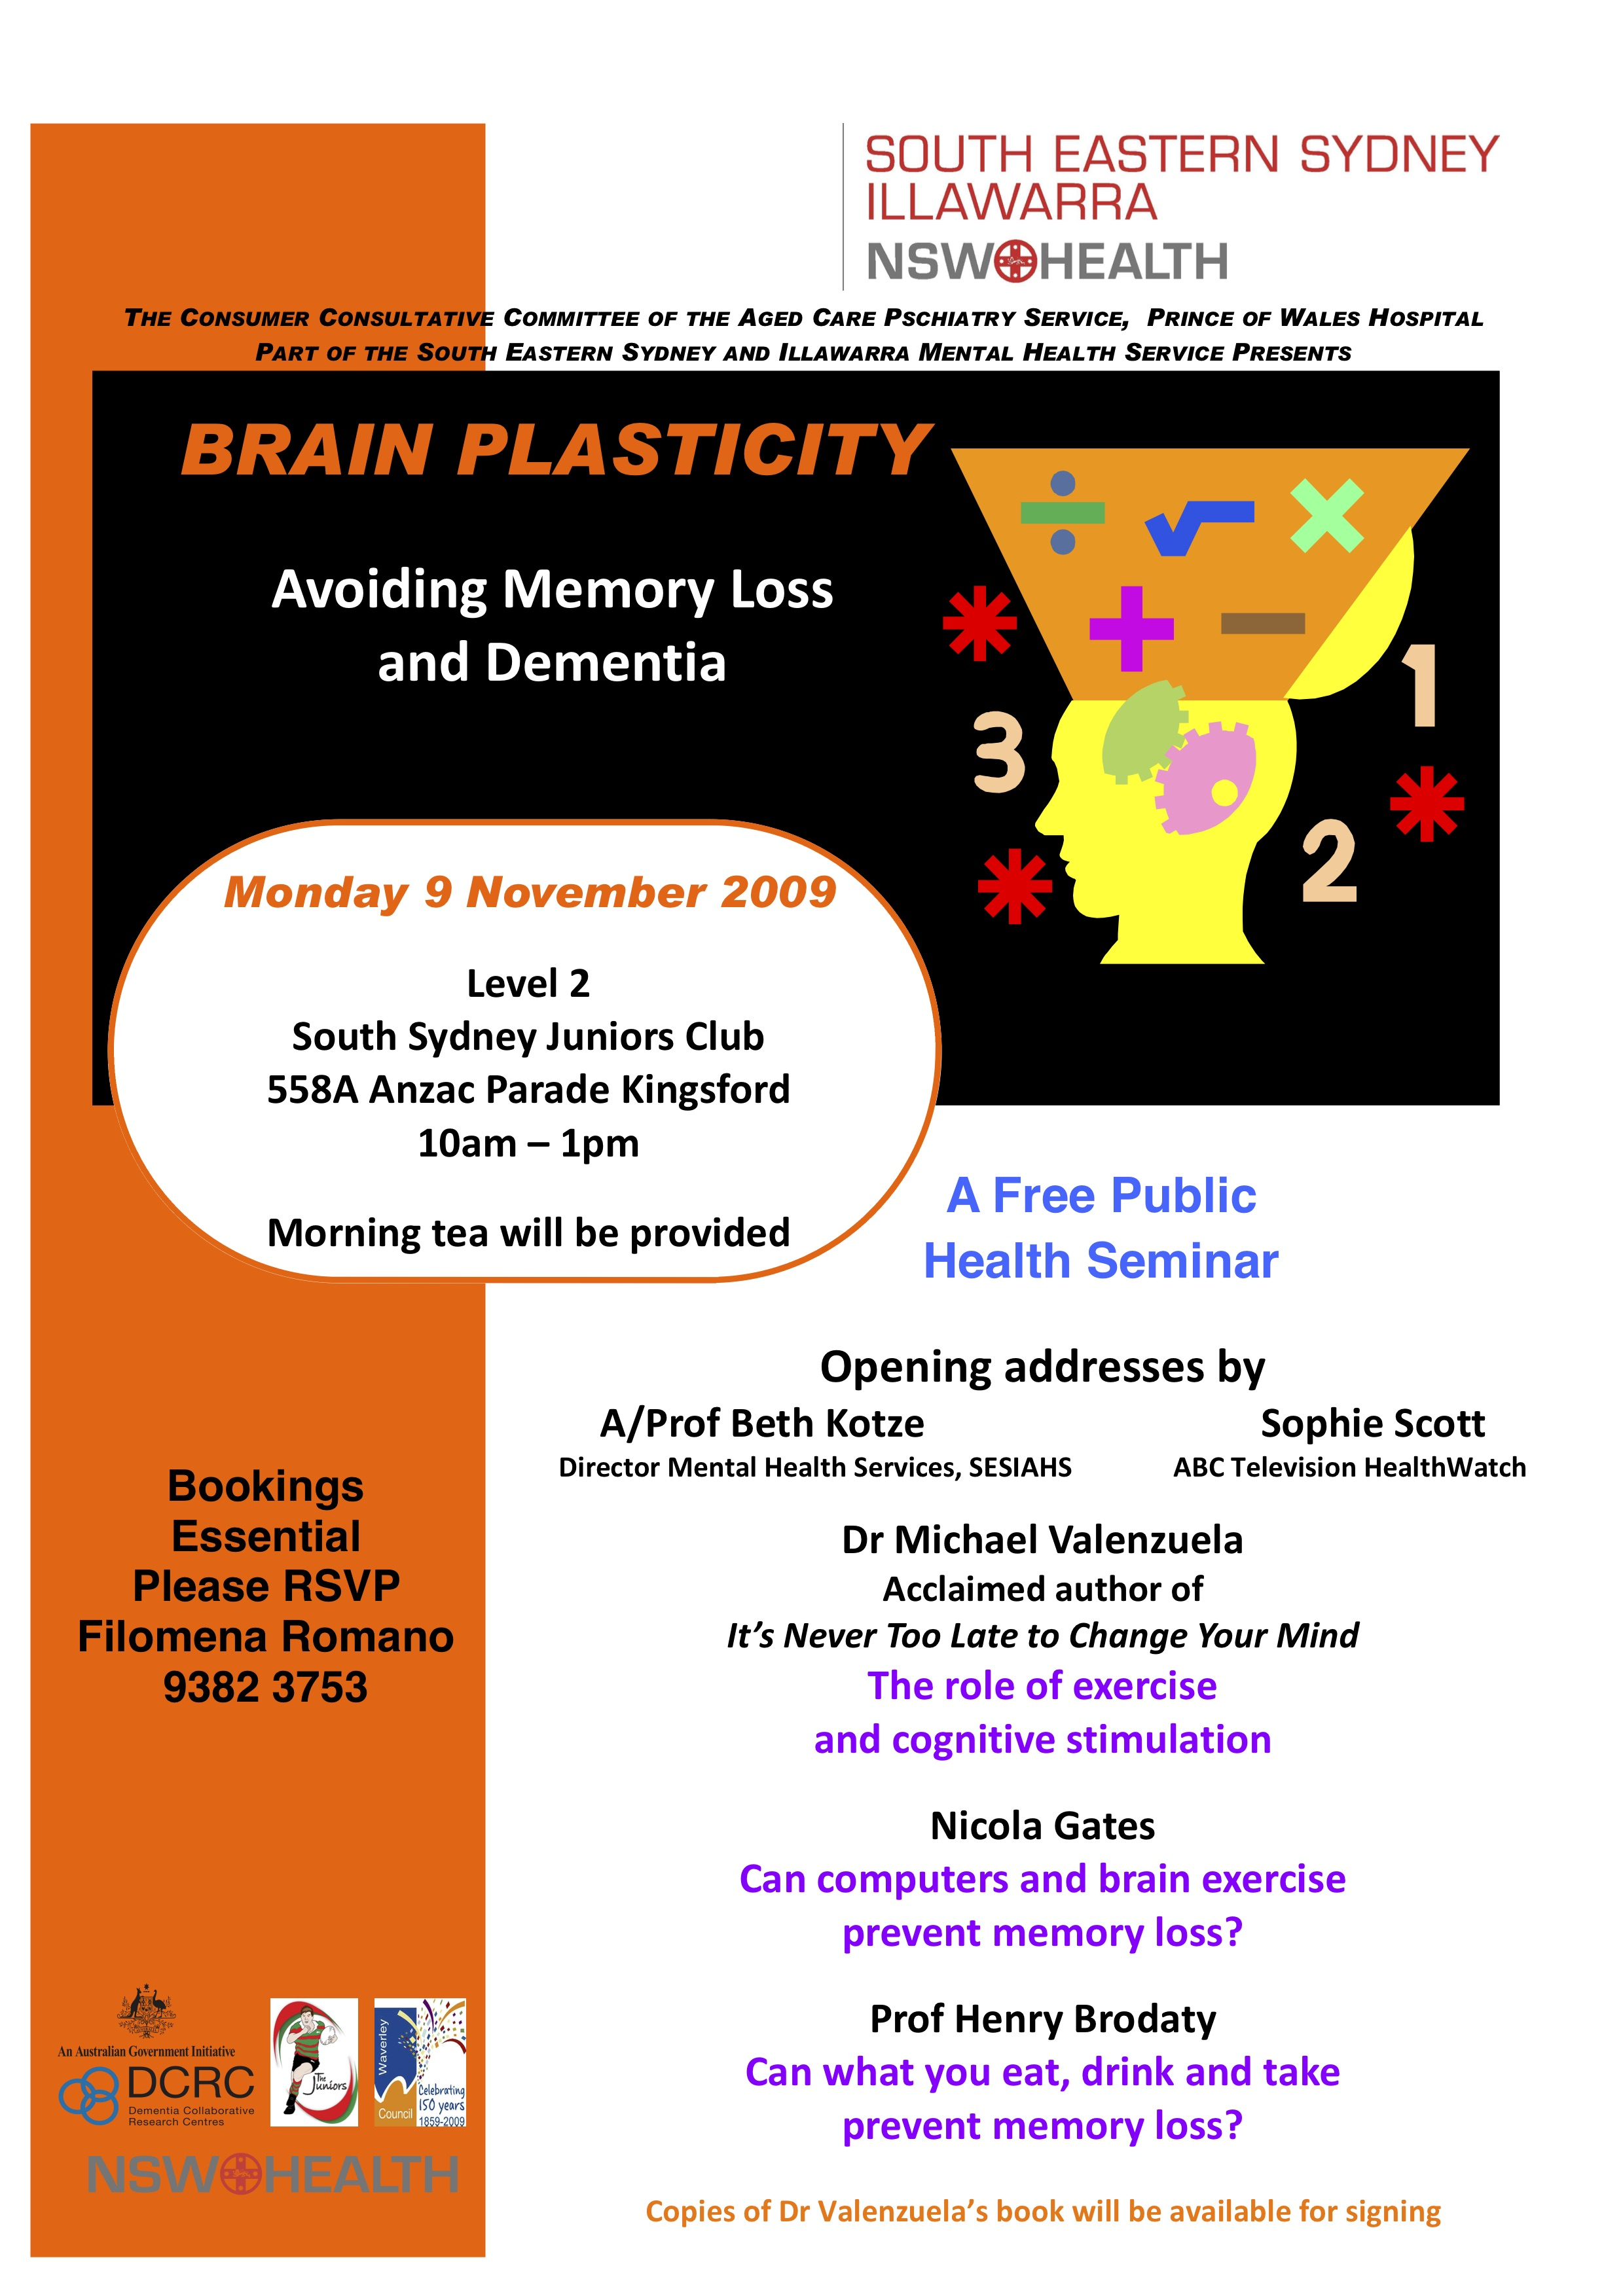 2009 Brain Plasticity - Avoiding Memory Loss and Dementia.jpg